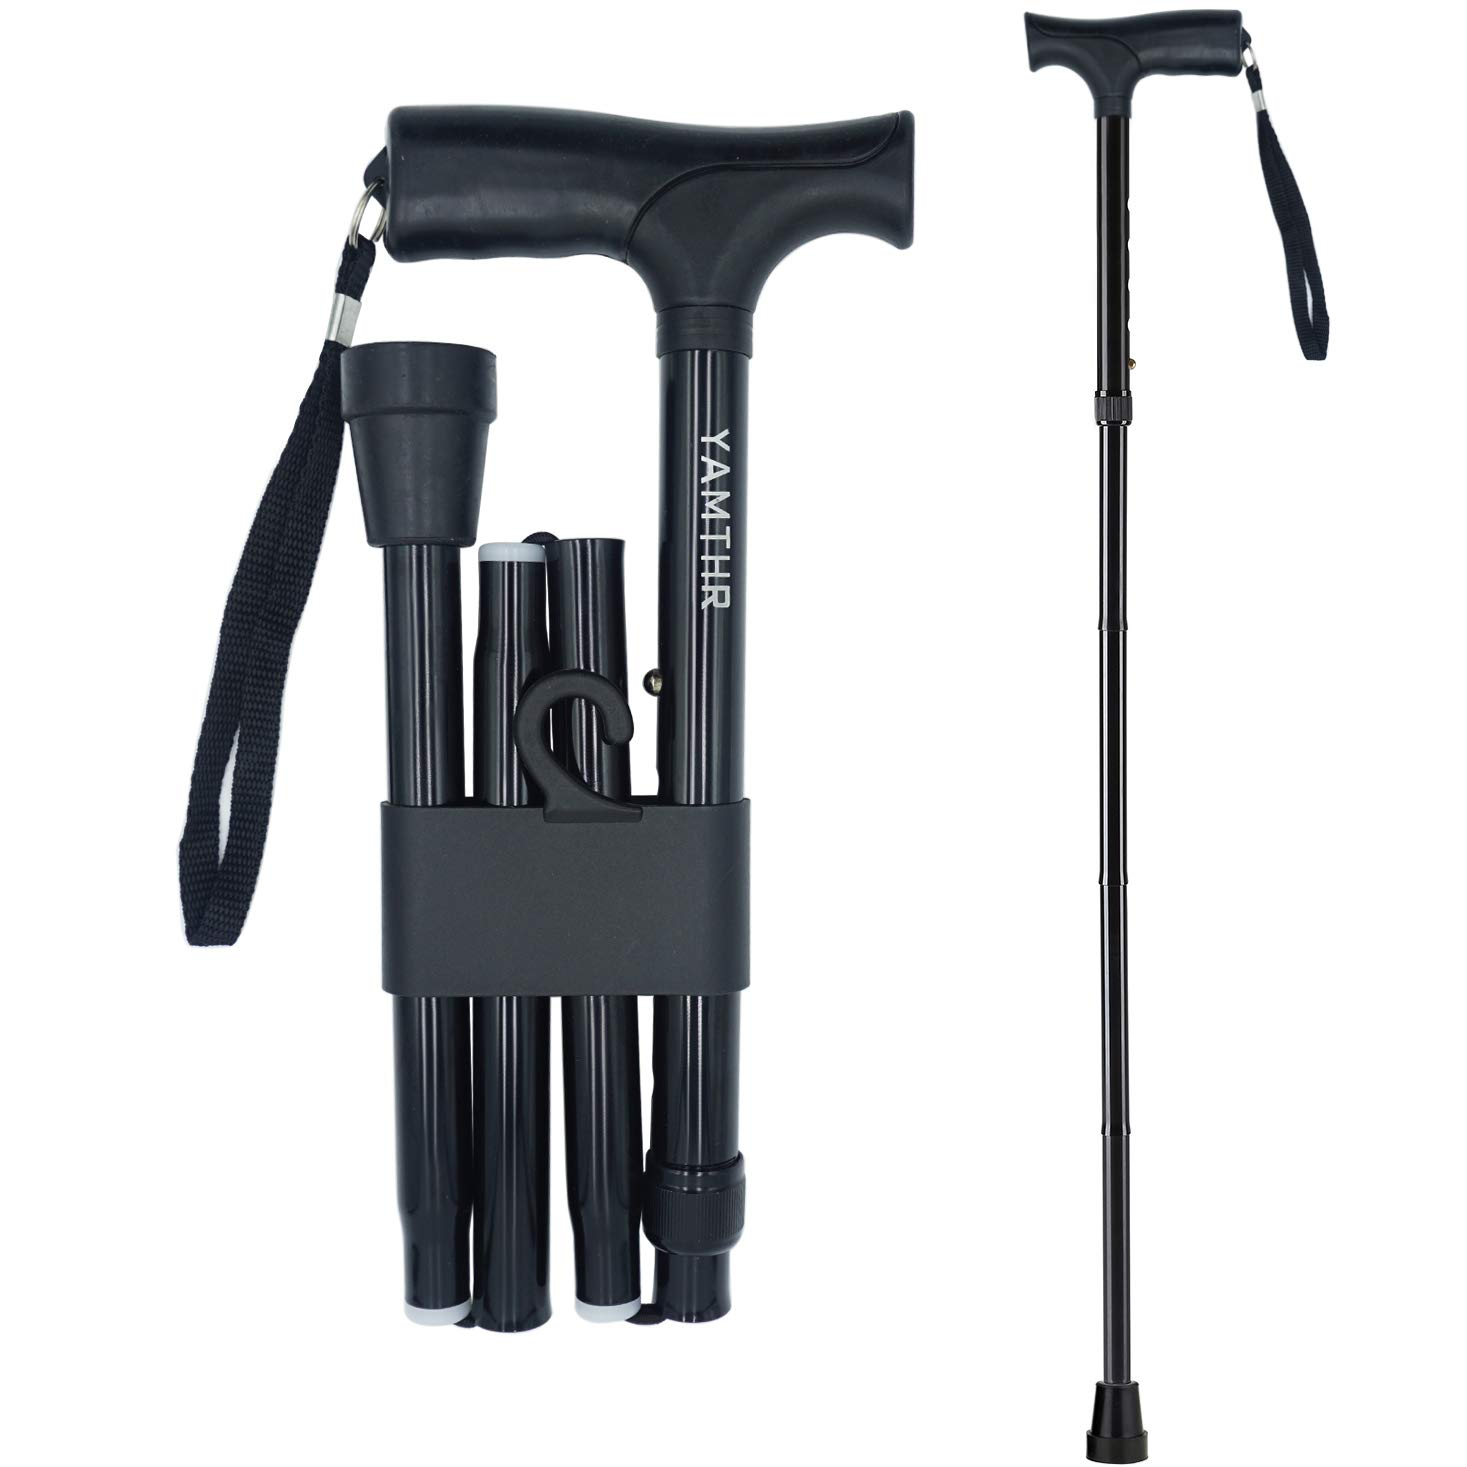 YAMTHR Folding Walking Cane for Men, Women, Portable Walking Stick Balancing Mobility Aid, Collapsible, Lightweight, Adjustable, Comfortable T Handles (Black)